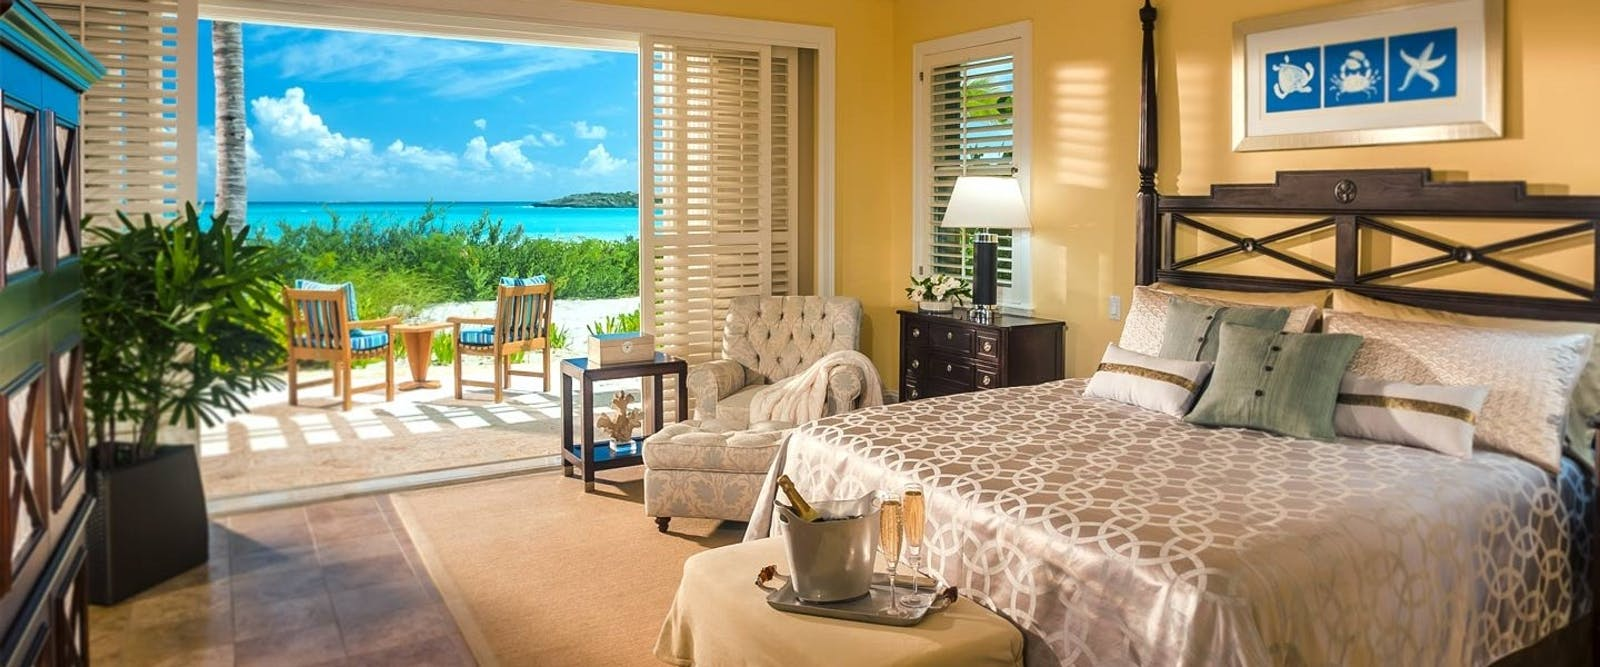 Prime Minister Honeymoon Beachfront Villa Suite at Sandals Emerald Bay Golf, Tennis & Spa Resort, Bahamas, Caribbean